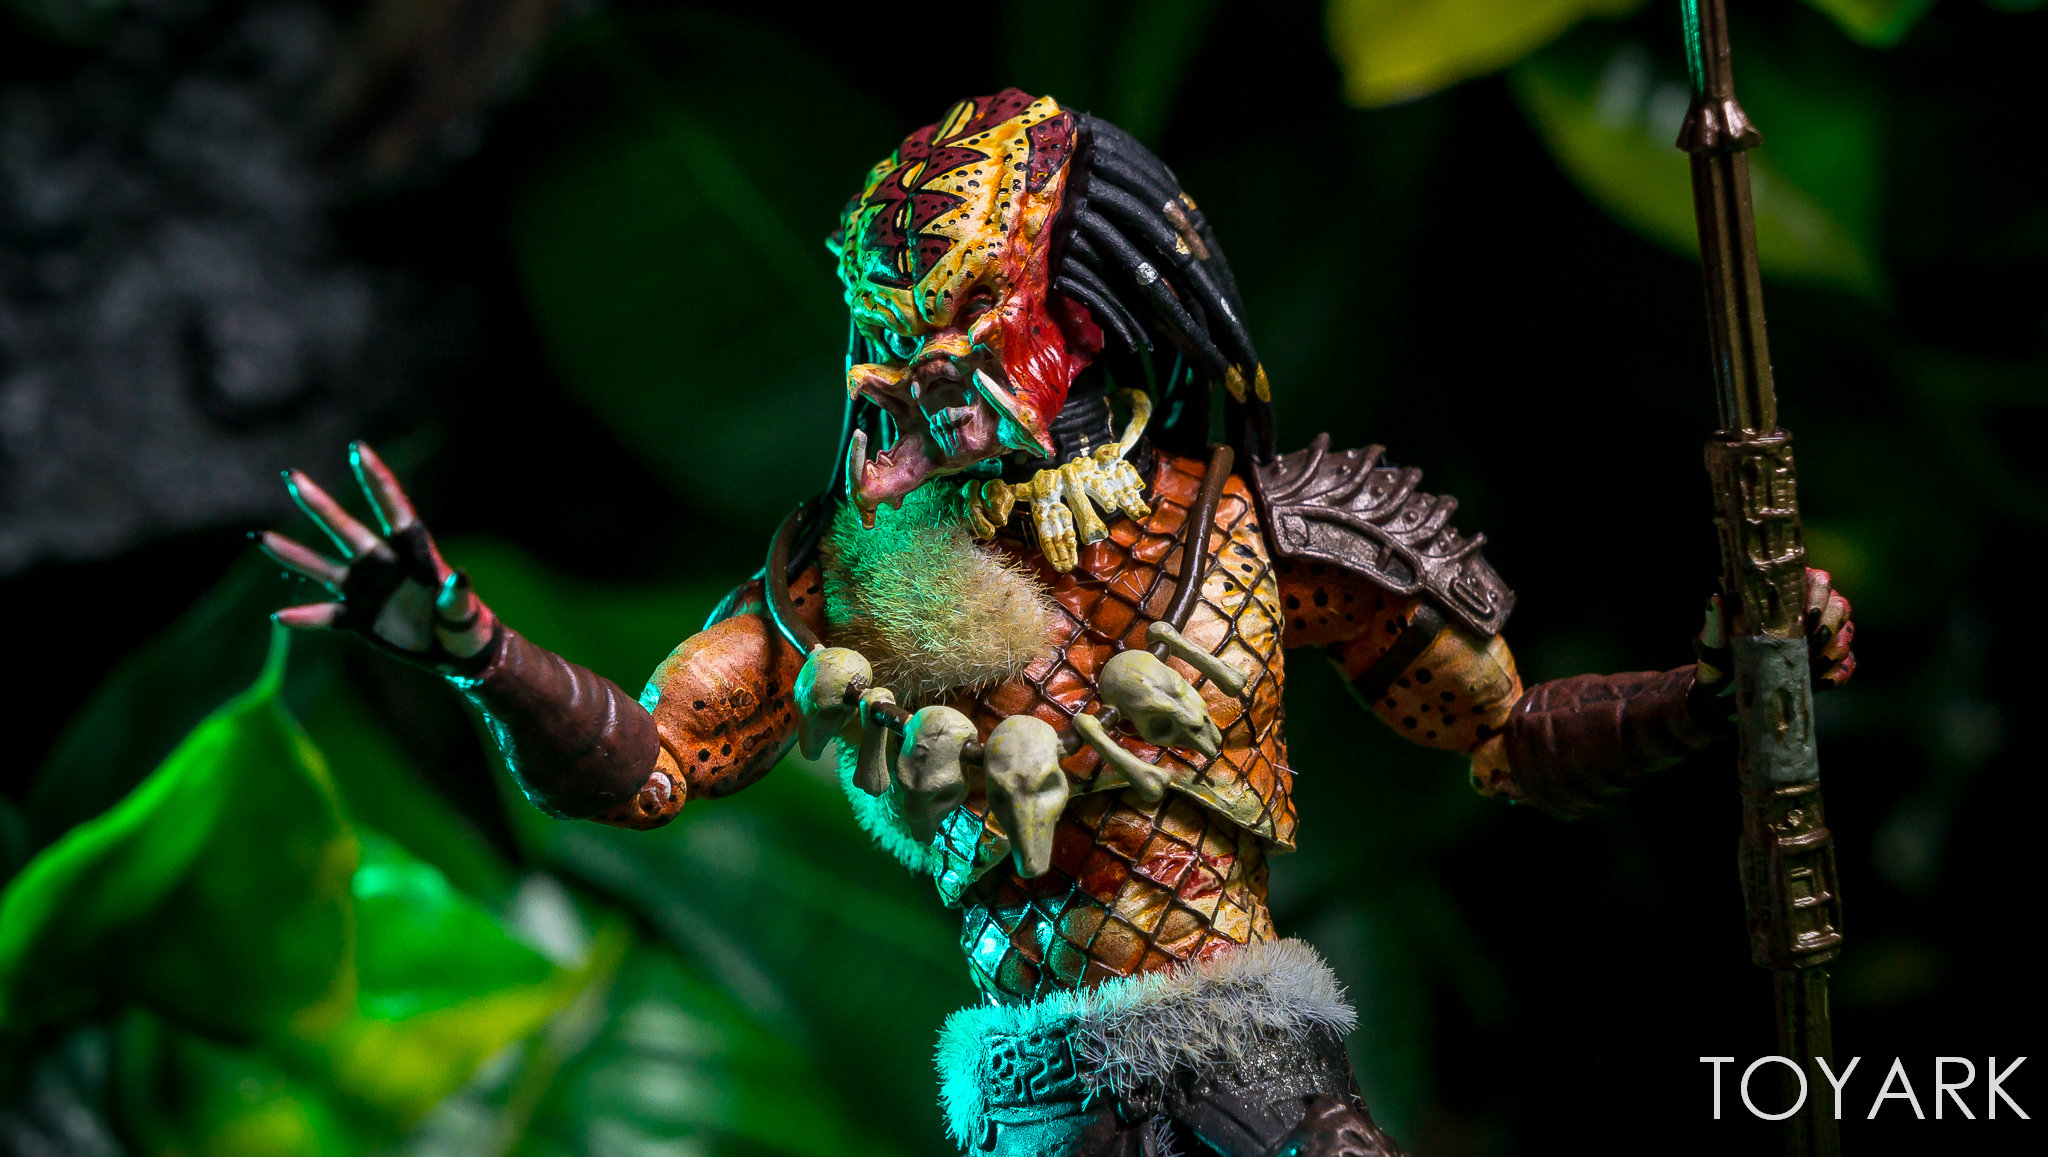 http://news.toyark.com/wp-content/uploads/sites/4/2018/03/Hiya-Predator-2-Figures-041.jpg